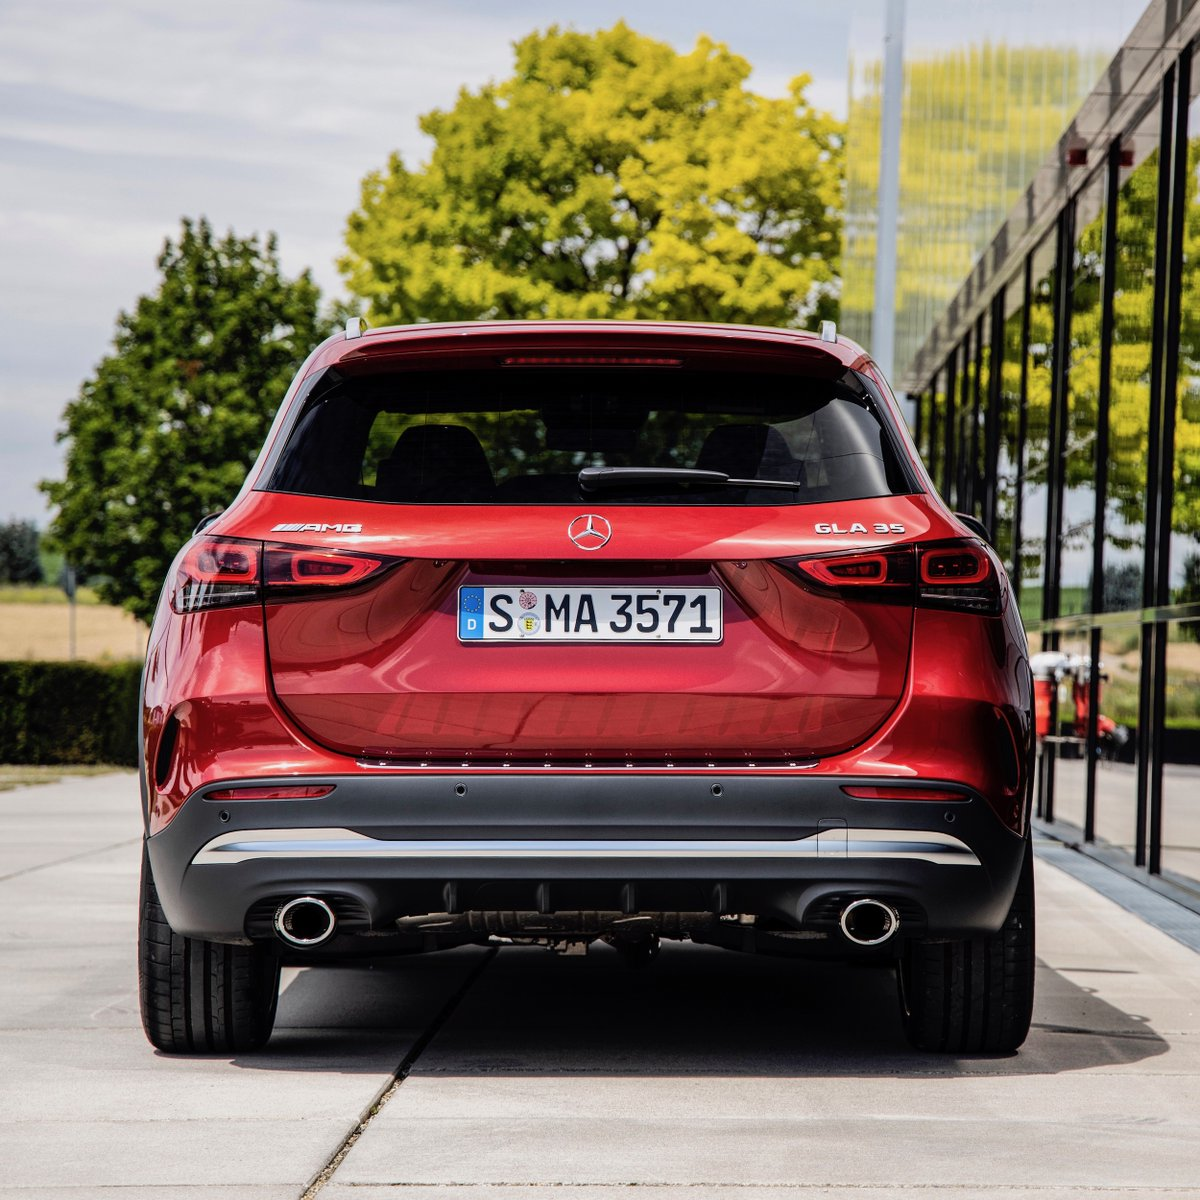 [Kraftstoffverbrauch kombiniert: 7,5–7,4 l/100 km | CO₂-Emissionen kombiniert: 171–170 g/km| https://t.co/s95yKNytGO | Mercedes-AMG GLA 35 4MATIC]  A compact all-rounder as an entry to the #MercedesAMG world: The new Mercedes-AMG #GLA 35 4MATIC.  https://t.co/i04F0wVc2g https://t.co/xZB5rsjwug